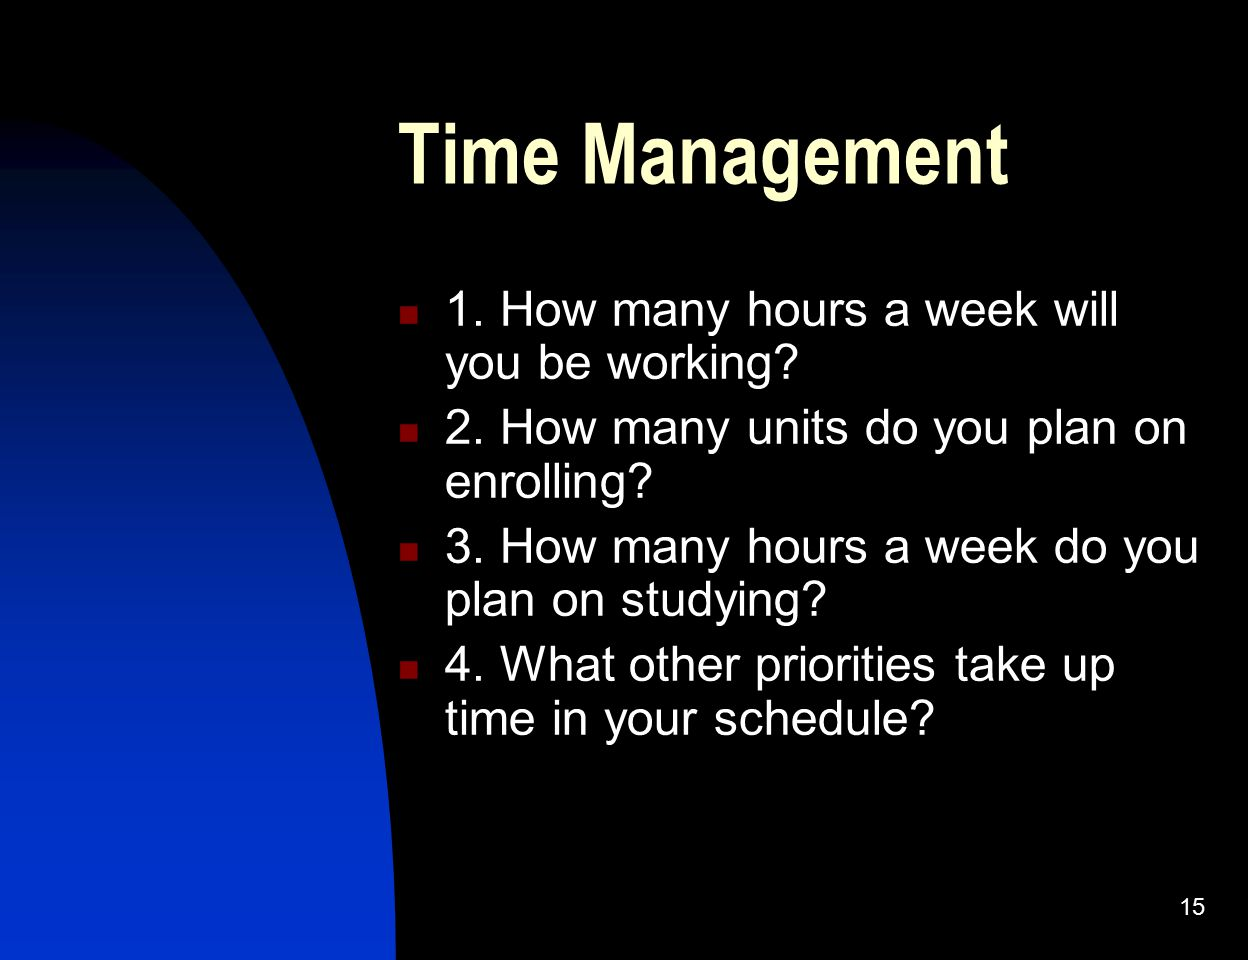 Time Management 1. How many hours a week will you be working